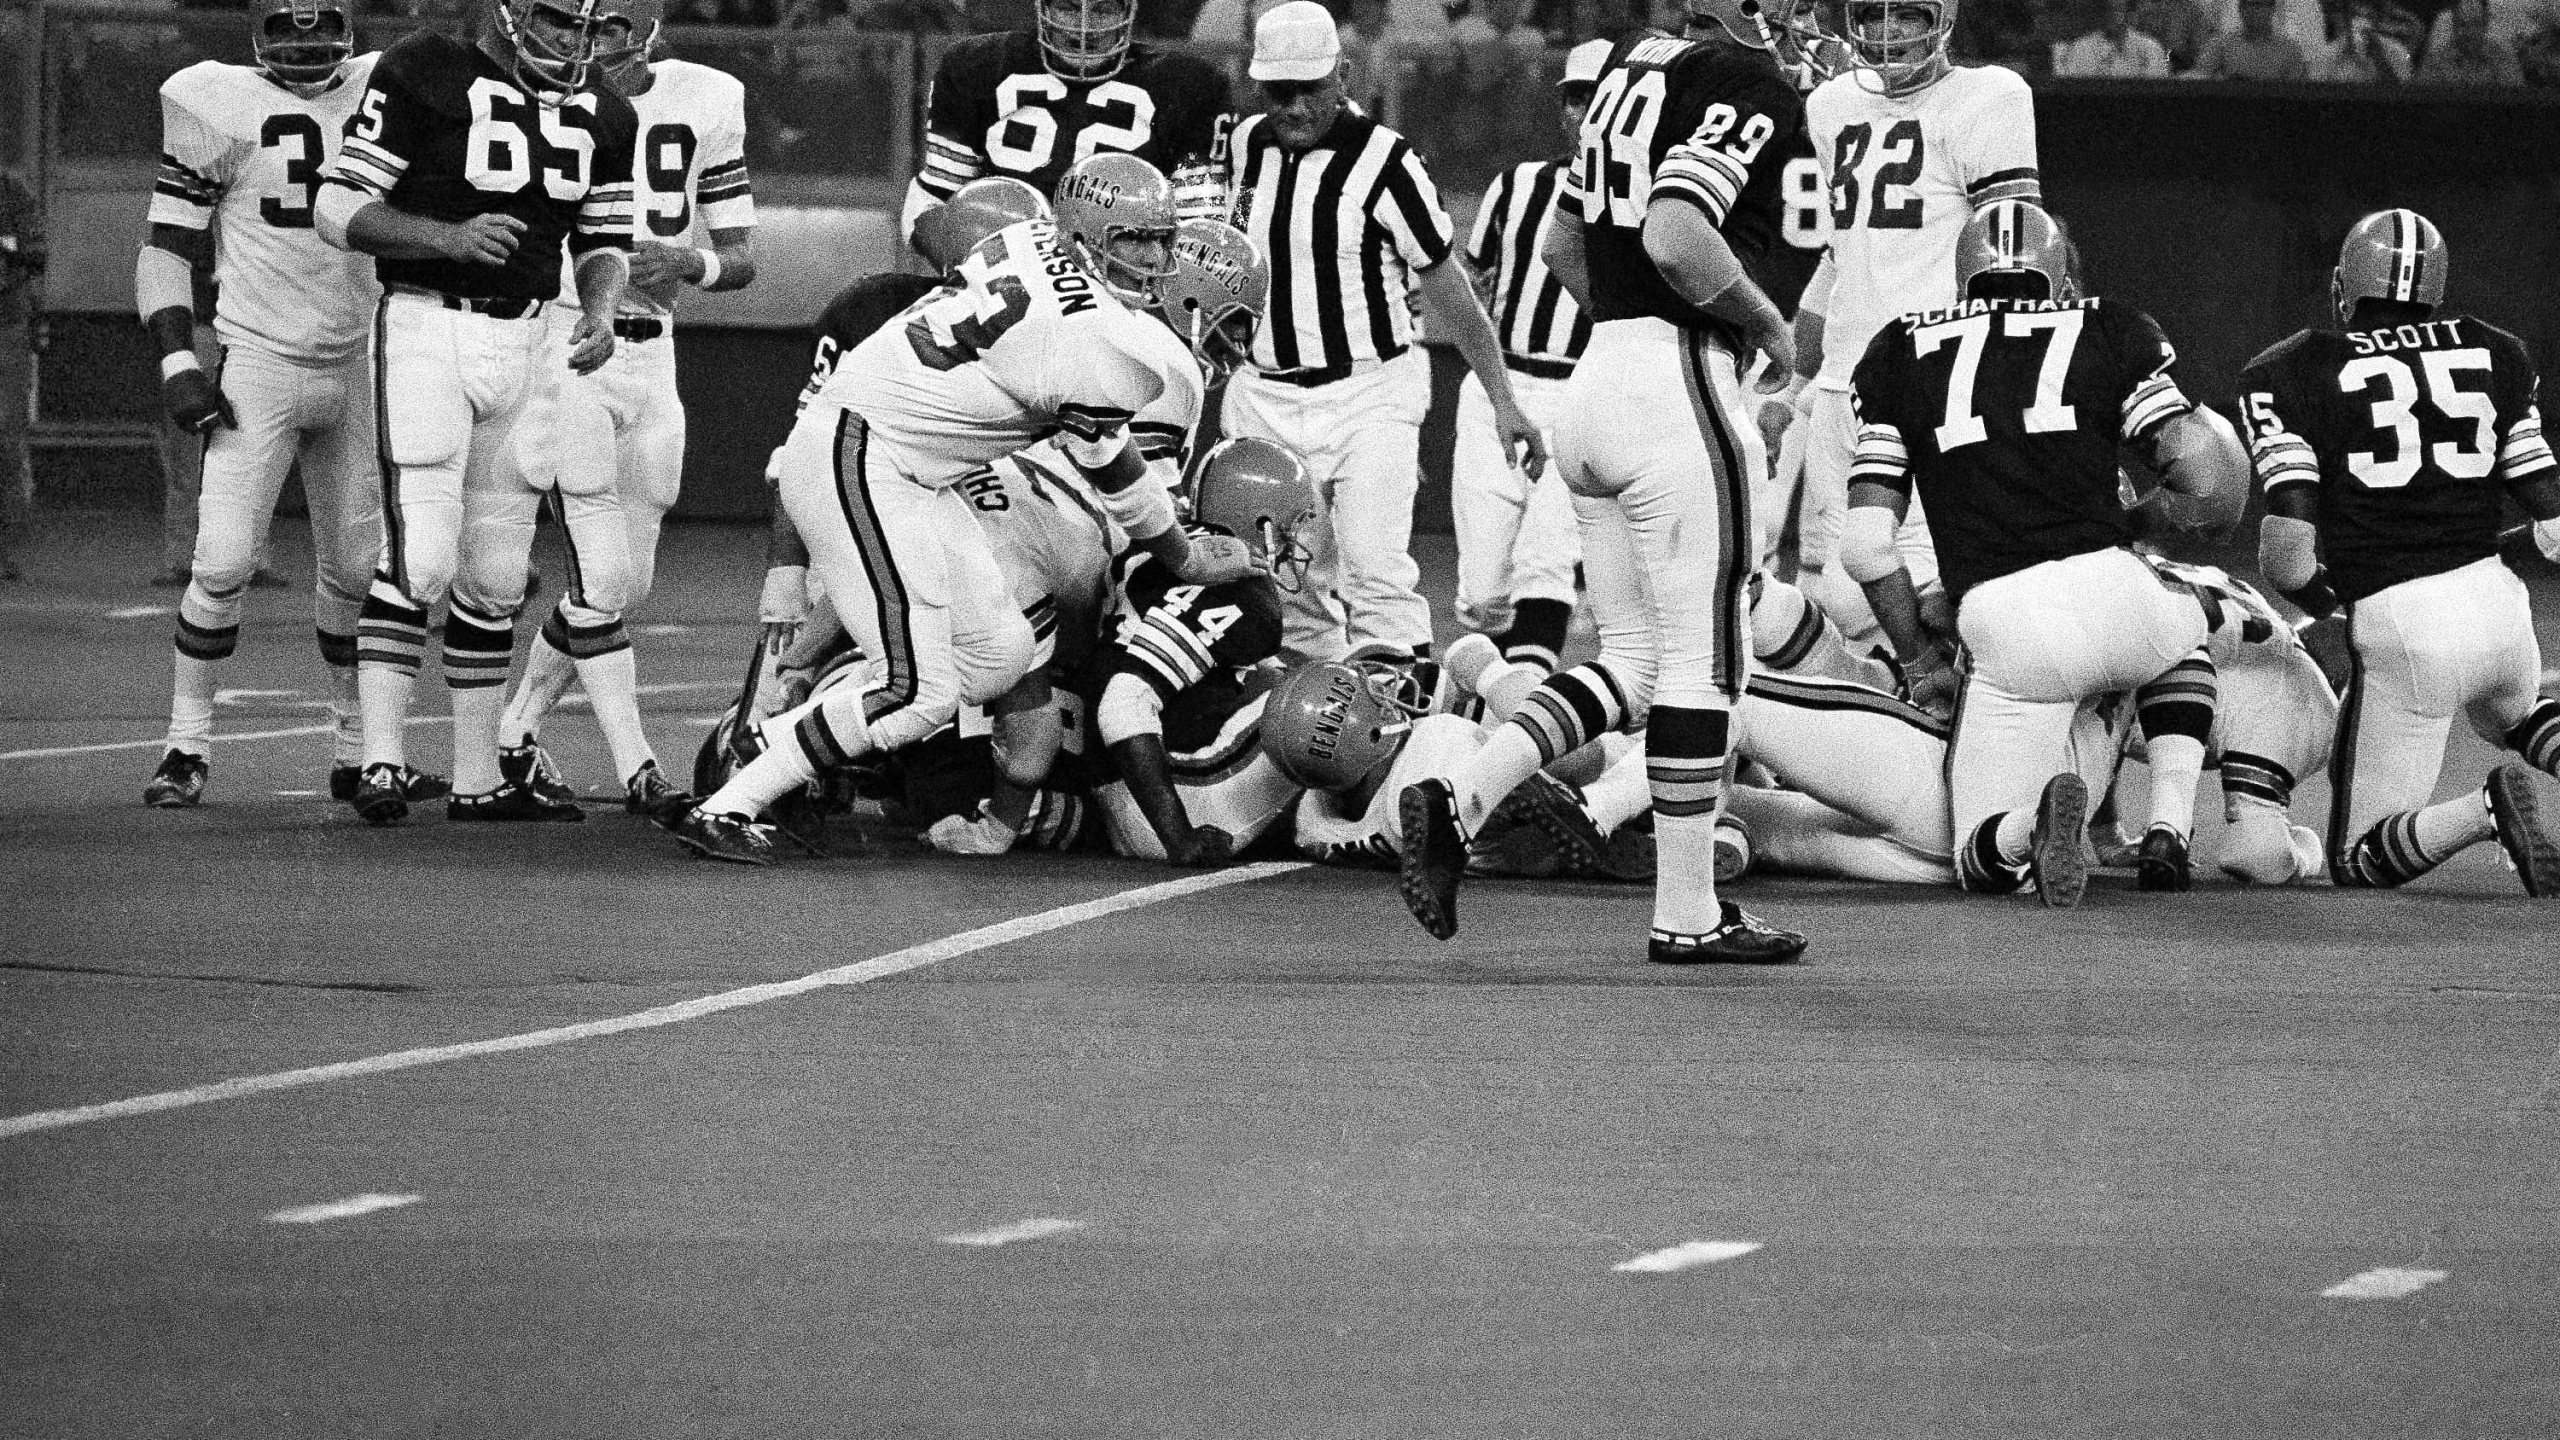 Cleveland's Leroy Kelly tried an of tackle plunge against Cincinnati Bengals in a NFL exhibition game on Saturday, August 30, 1970in Cincinnati and was smothered by Bengals. Bengals stopping Kelly (arrow points to ball) were Mike Reid on ground to Kelly?s right, and Bill Peterson (53). Other Beowns are Joe Taffoni (62), Milt Morin (89) and Dick Schafrath (77). Bengals won, 31-24.